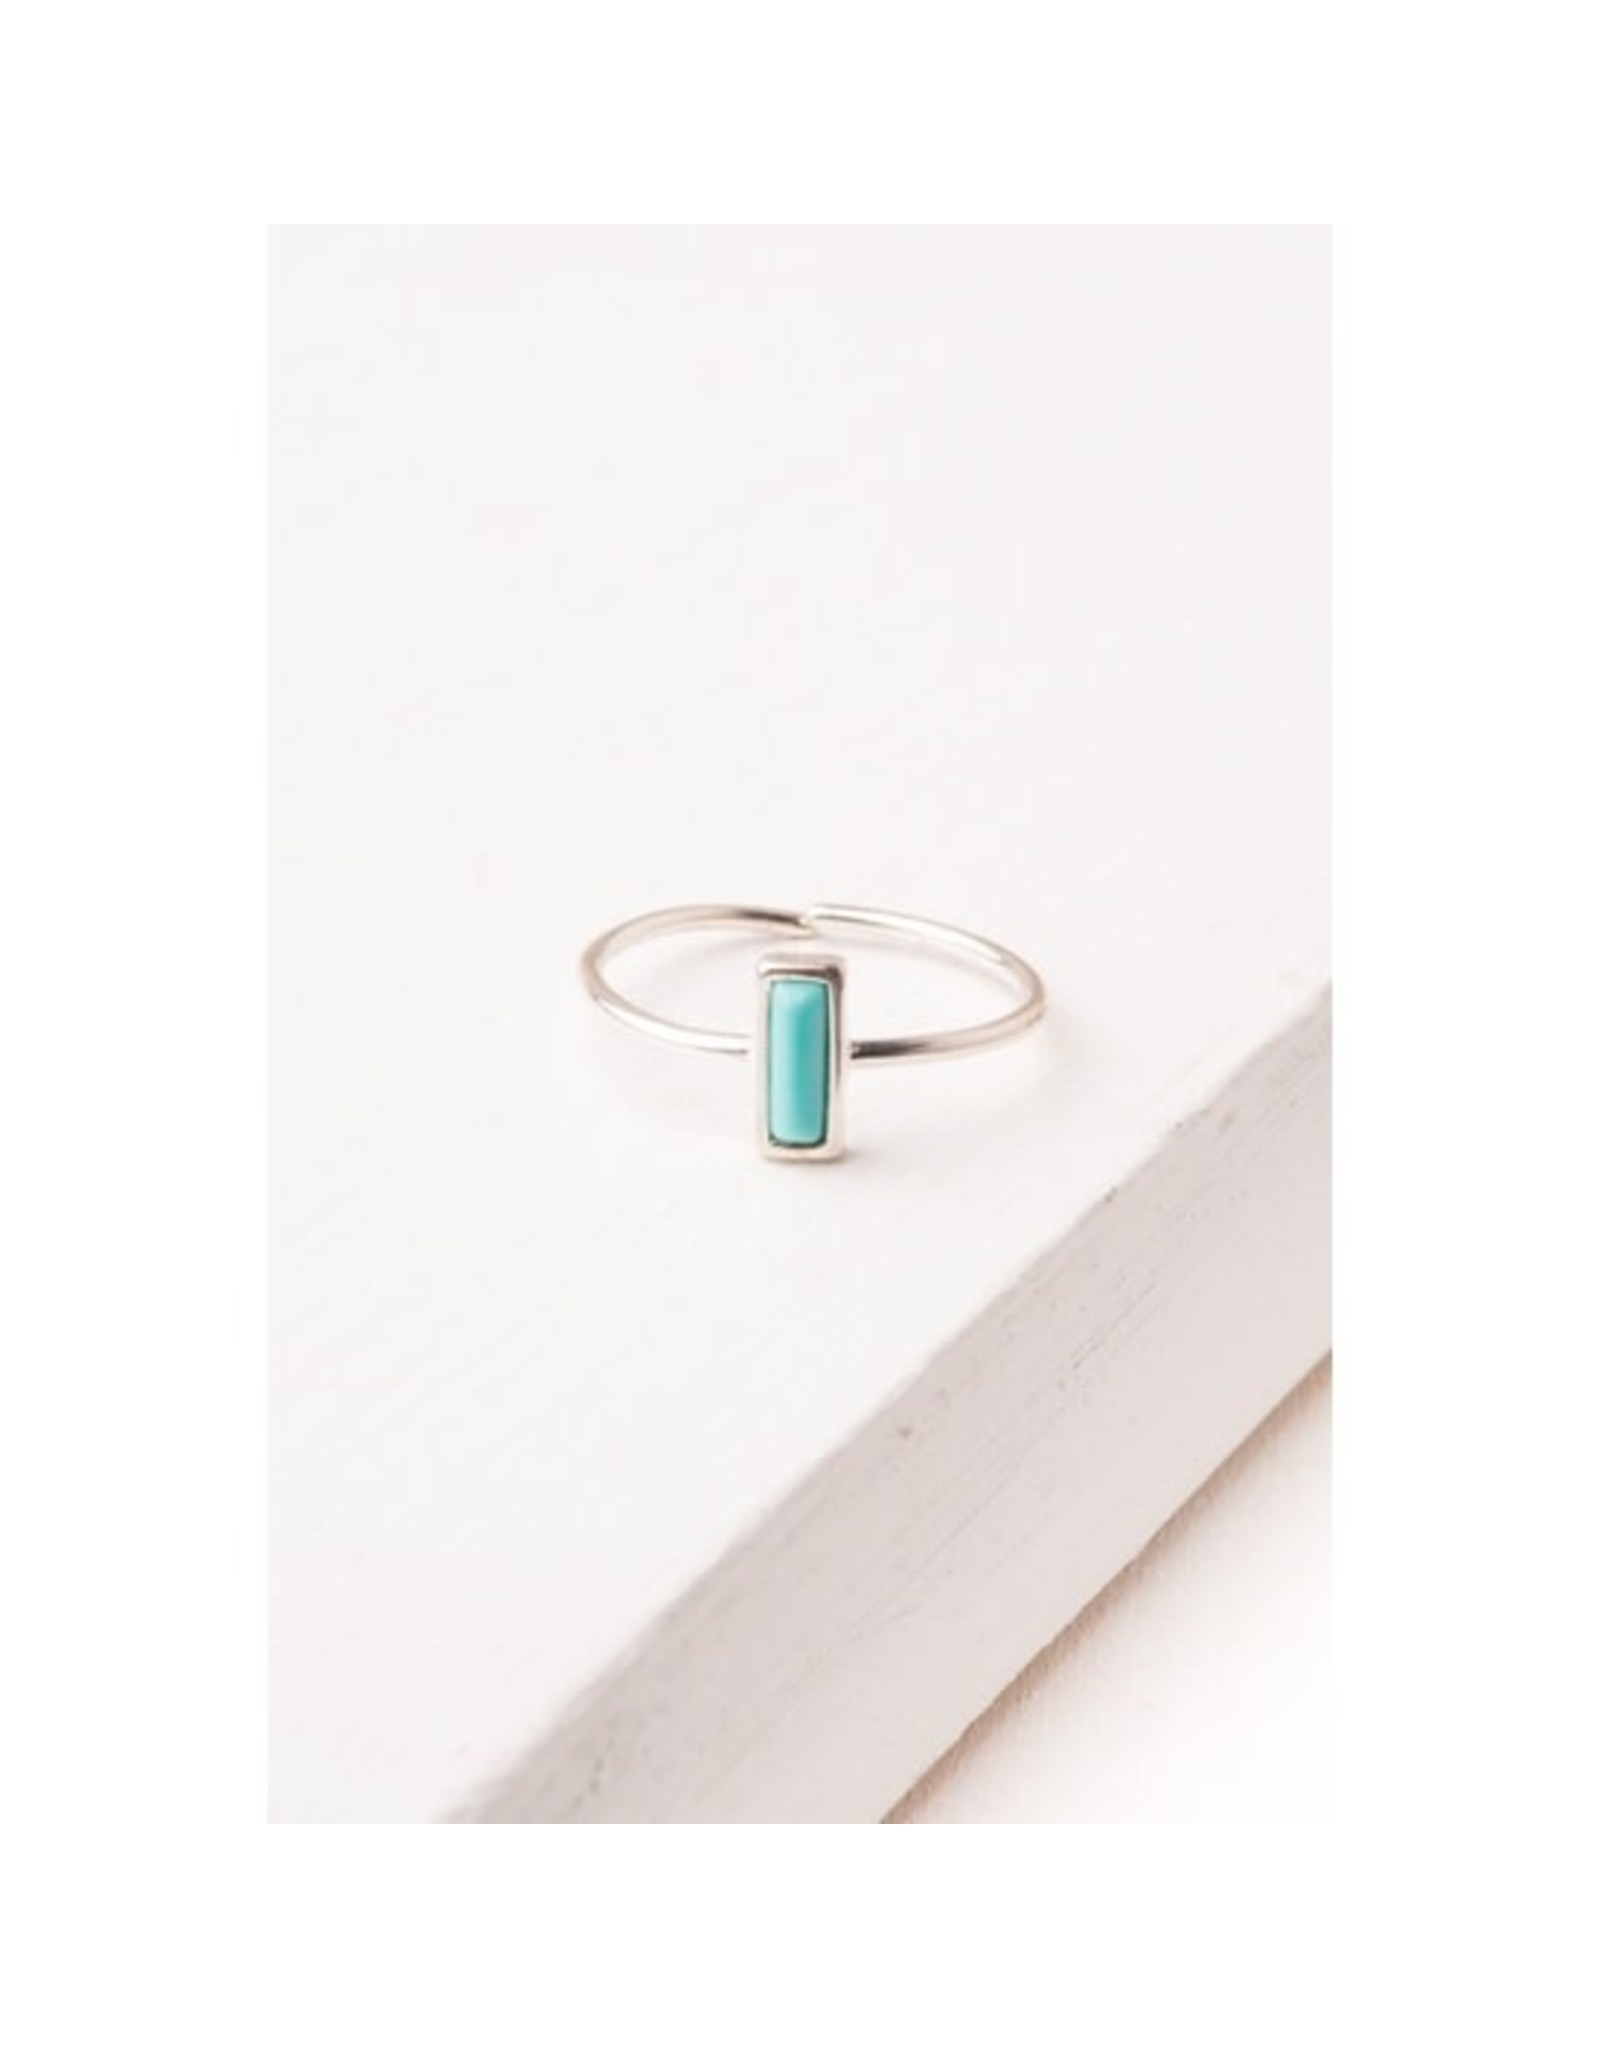 Silver and Turquoise Ring, Asia